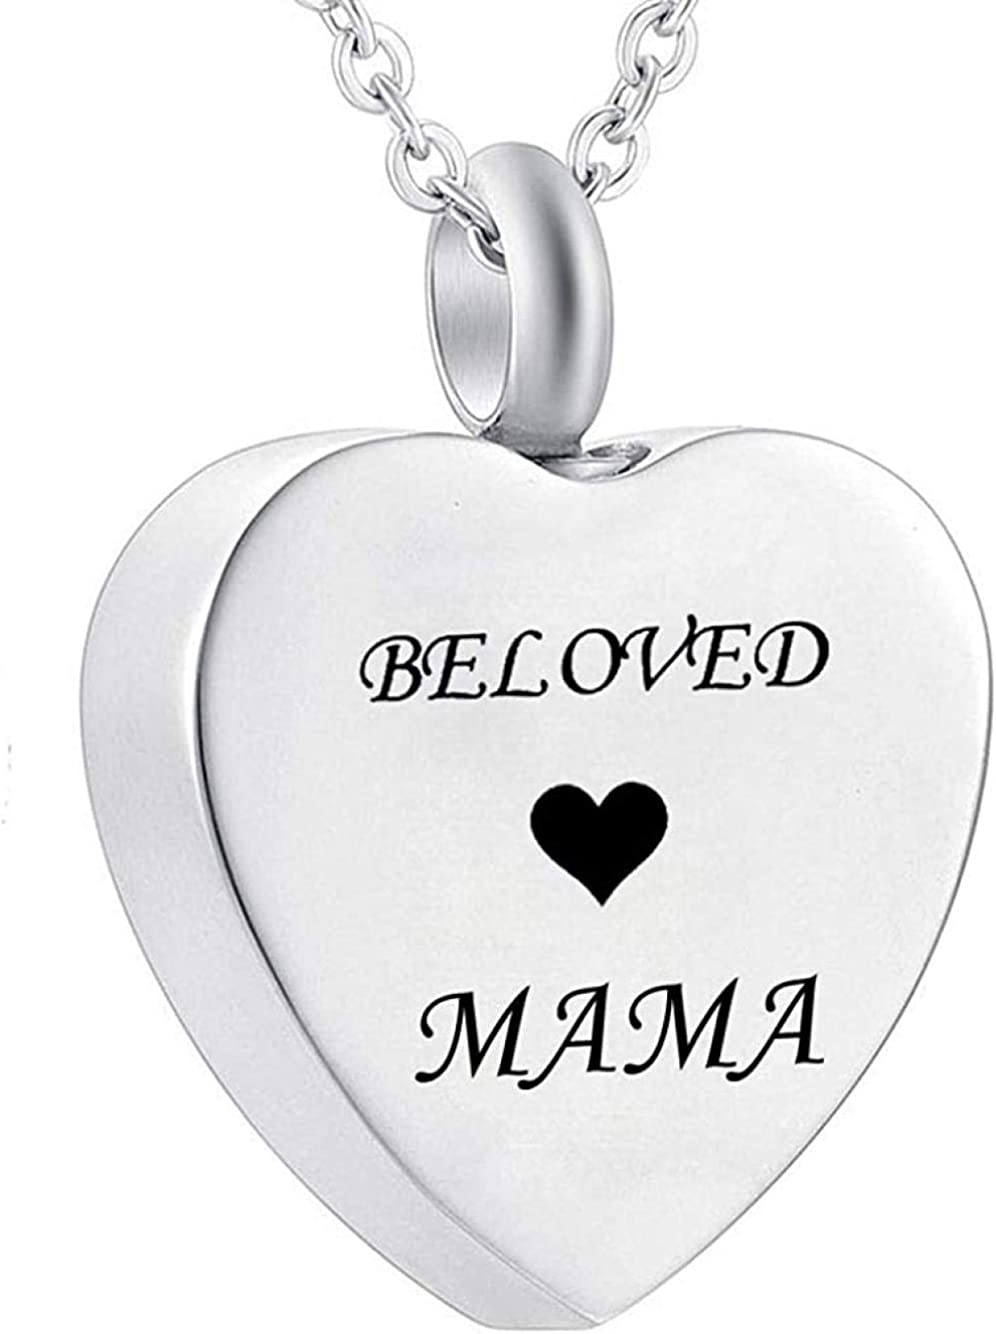 Ashes Chain Cremation Memorial Cremation Urn Heart Necklace for Ashes Personalized Charm Pendant 316 L Stainless Steel Memorial Keepsake Jewelry